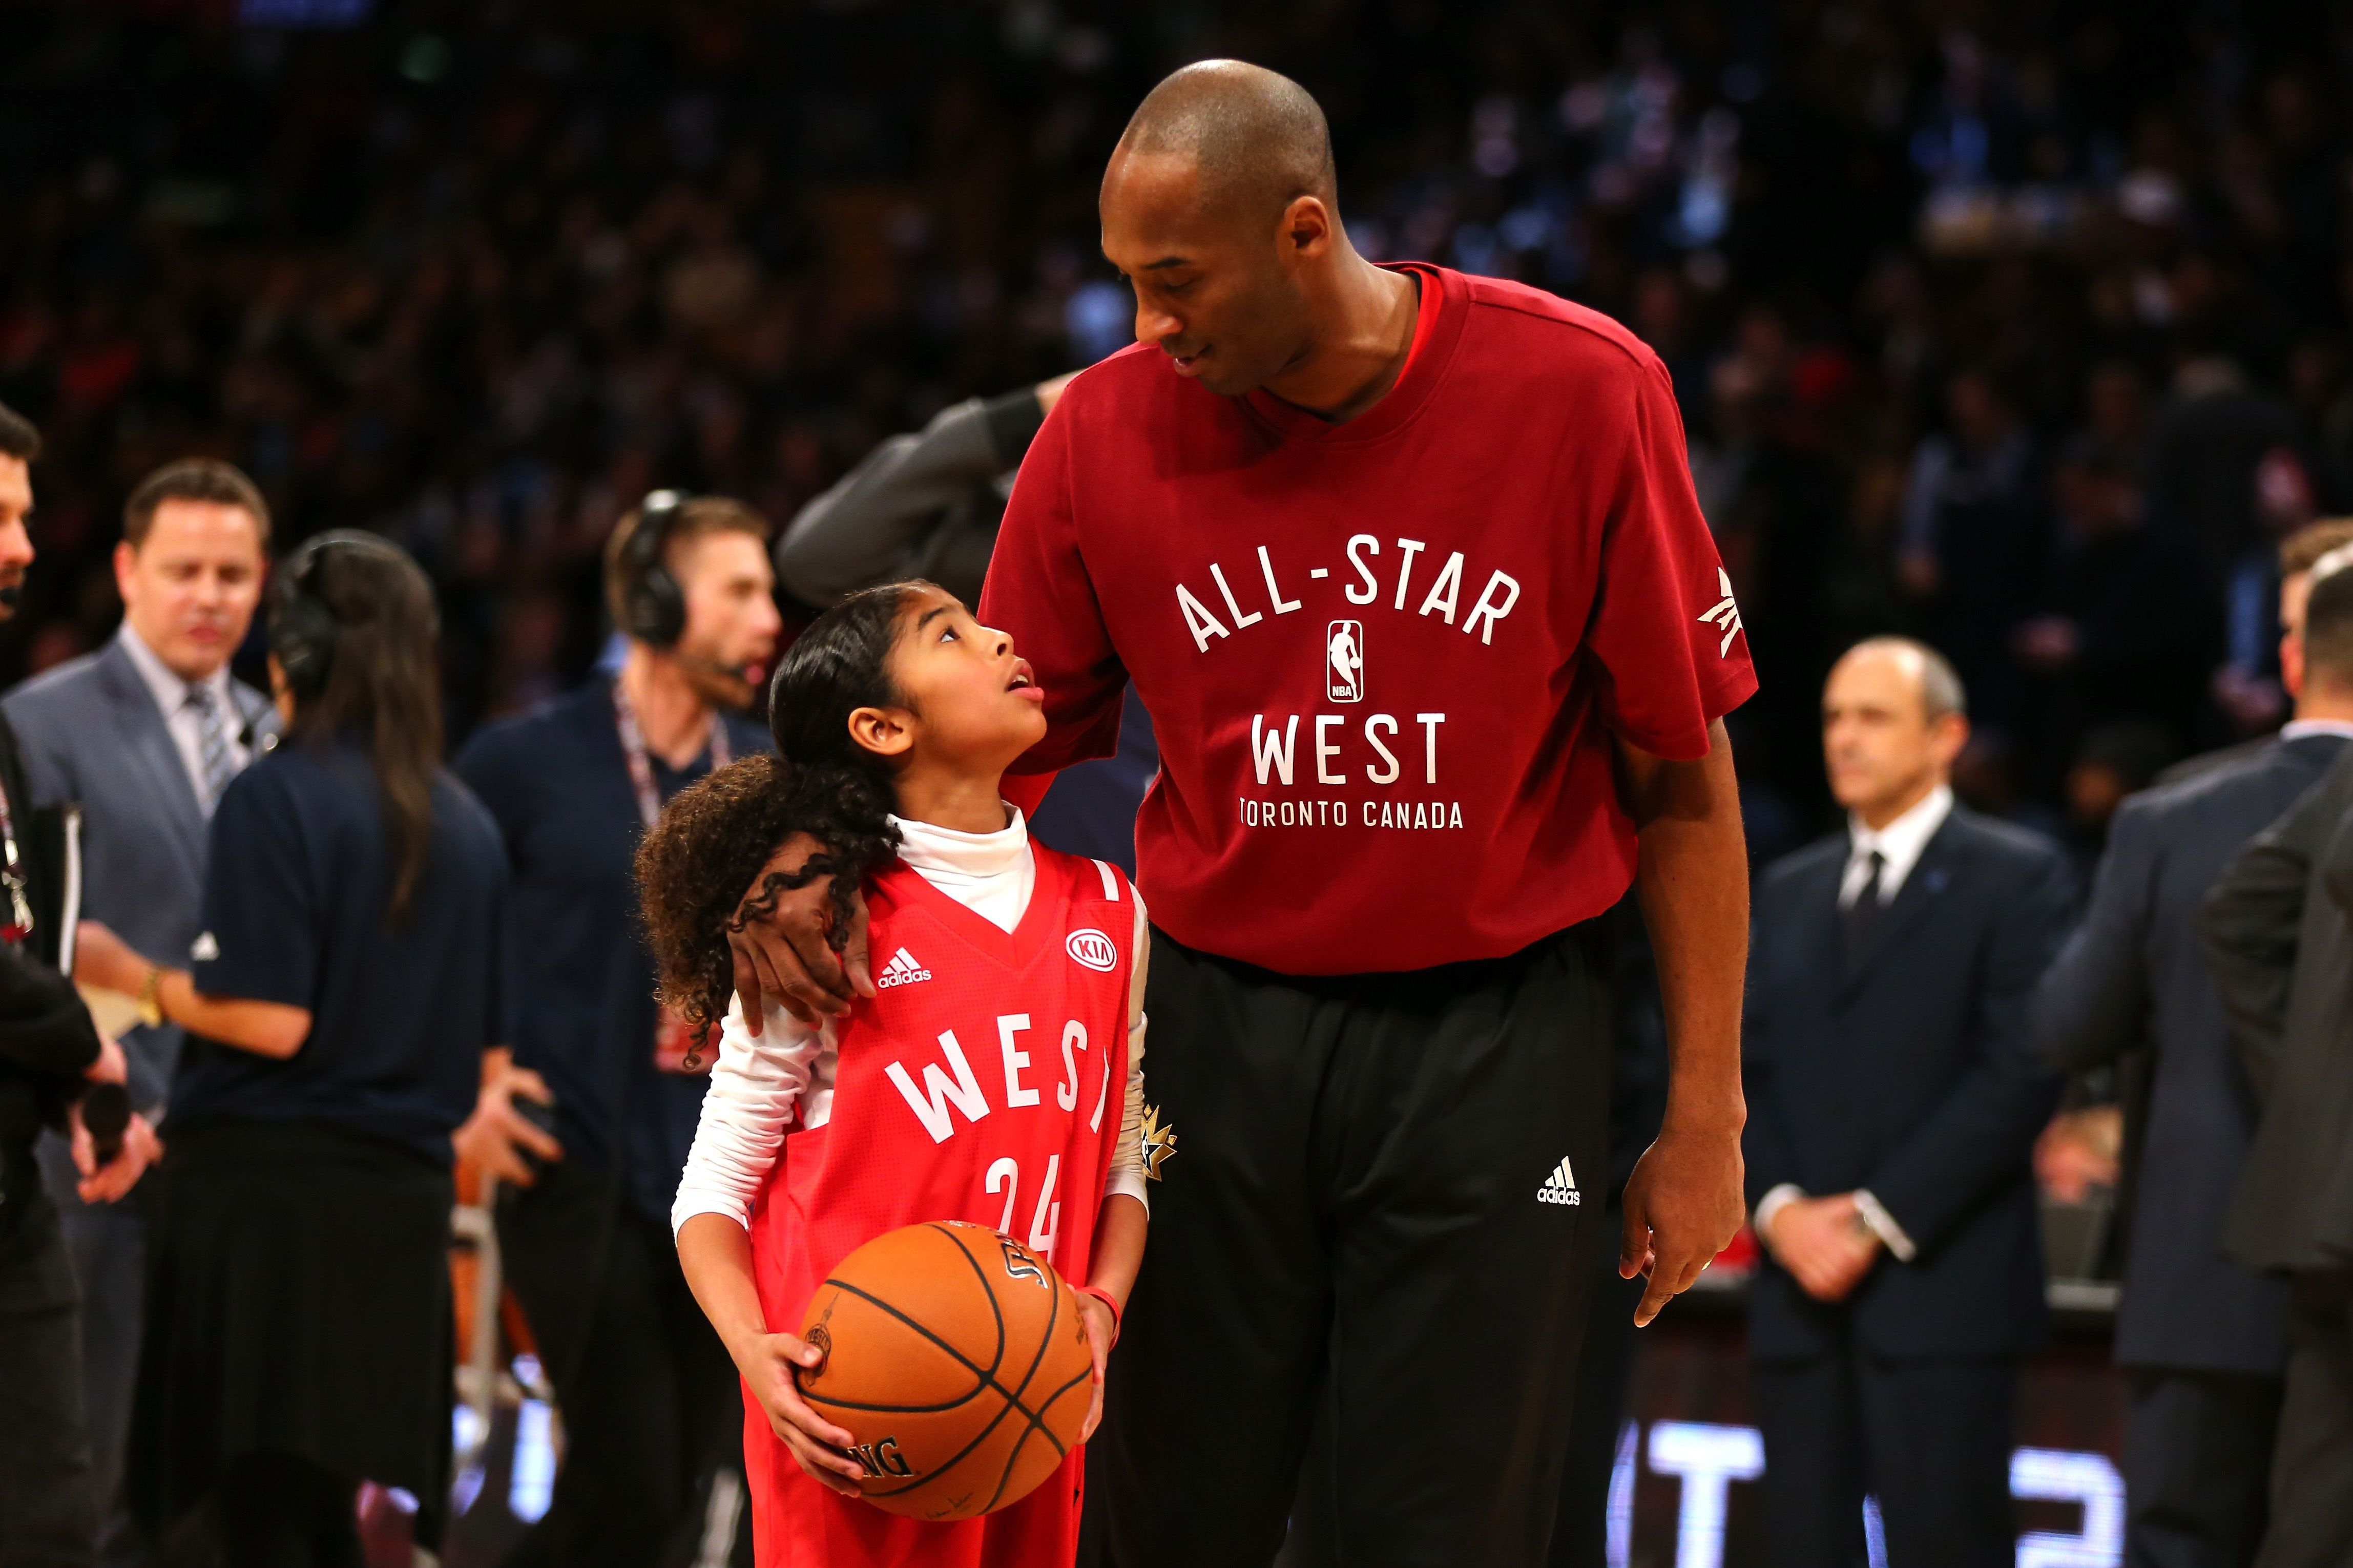 Kobe Bryant with daughter Gianna Bryant at the NBA All-Star Game 2016 at the Air Canada Centre on February 14, 2016 | Photo: Getty Images